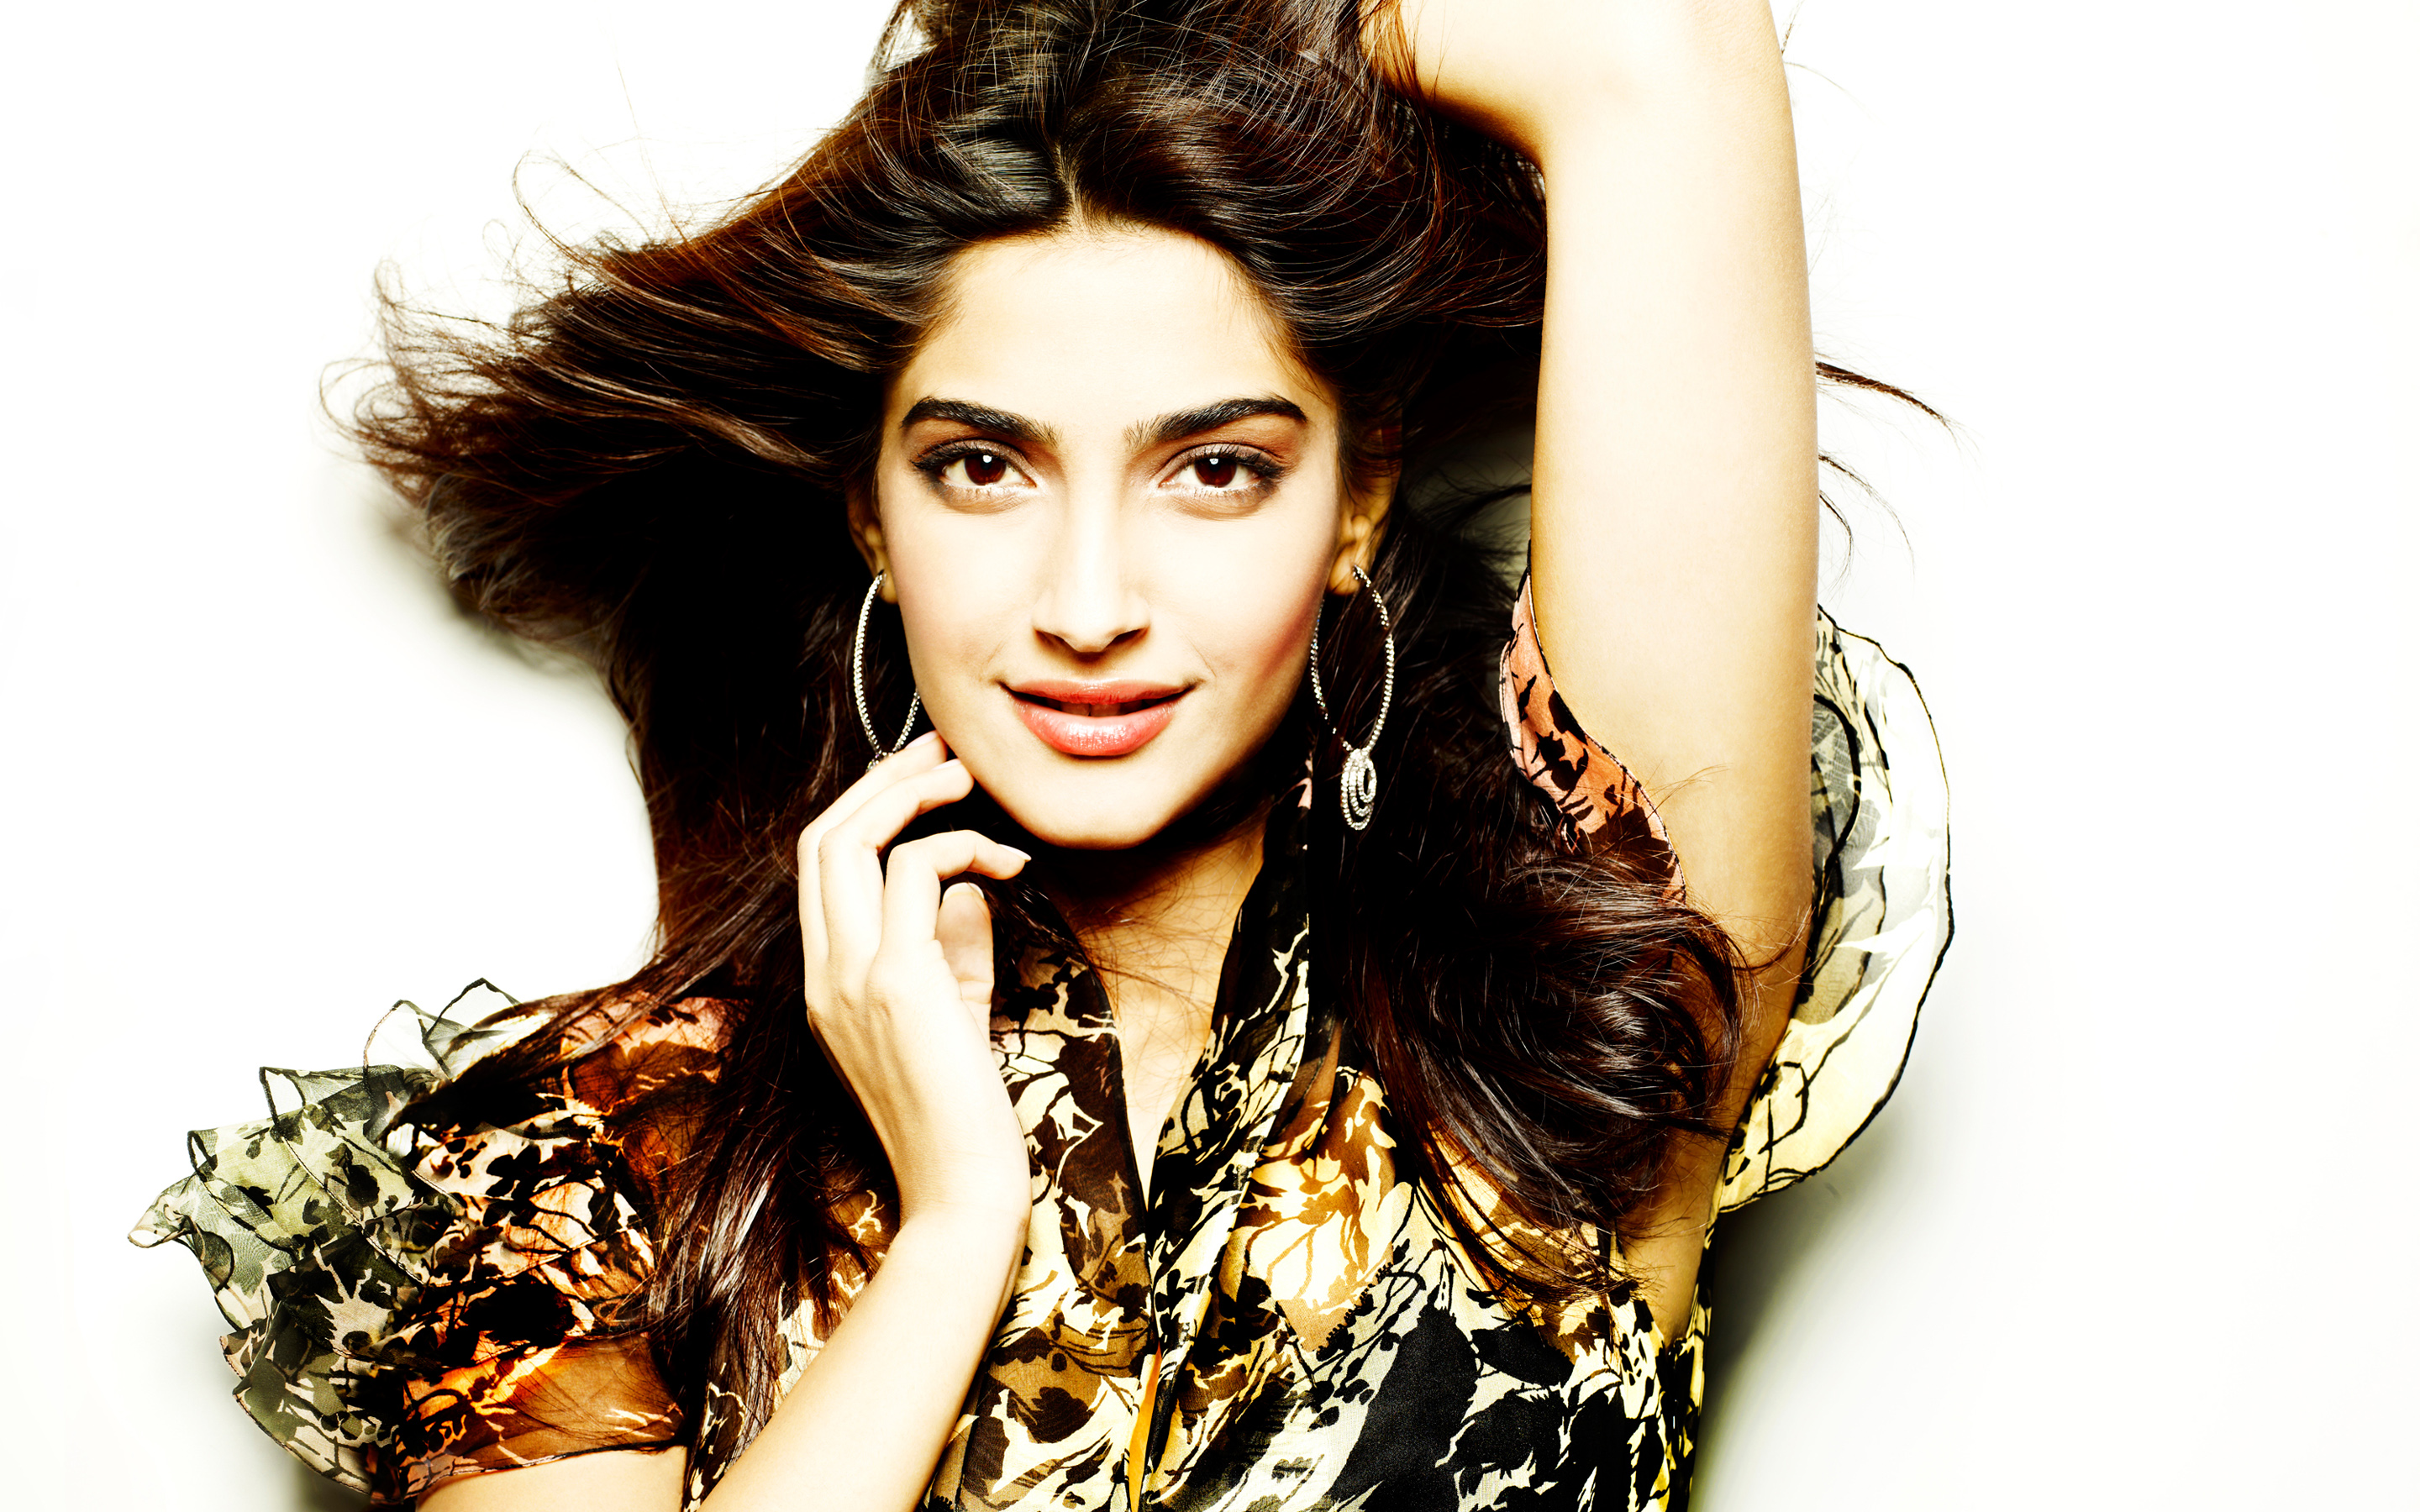 Sonam Kapoor Wallpapers: Sonam Kapoor Wallpapers High Resolution And Quality Download